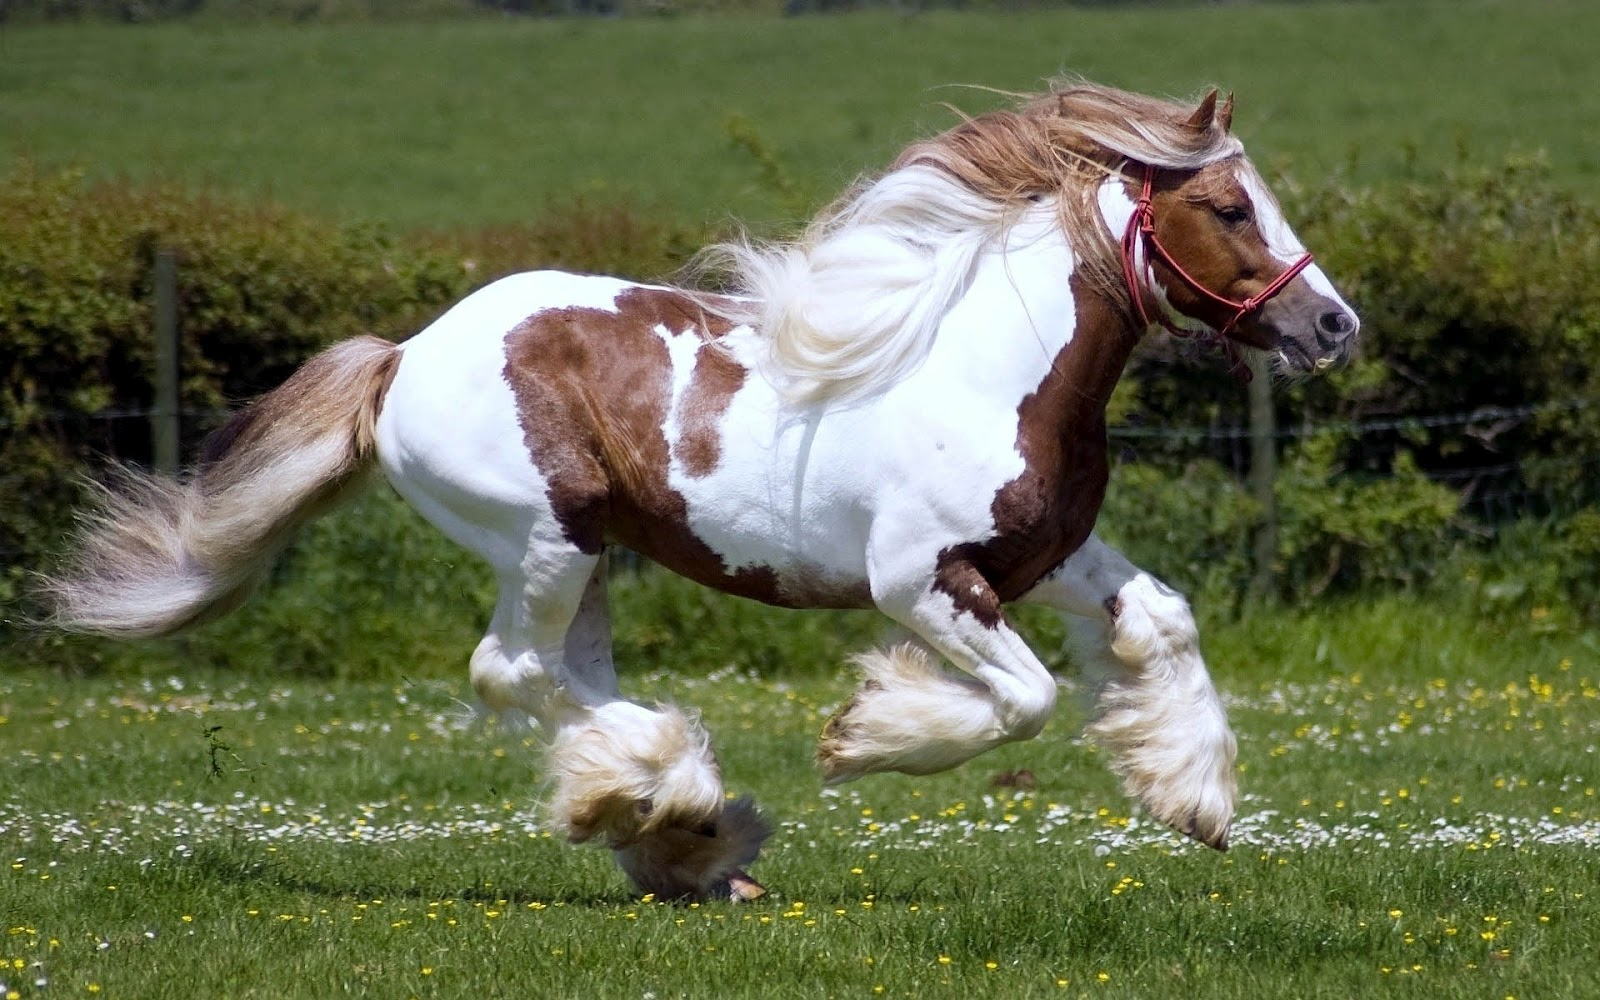 Fast Running Horse White And Brown Horse Running 1600x1000 Wallpaper Teahub Io